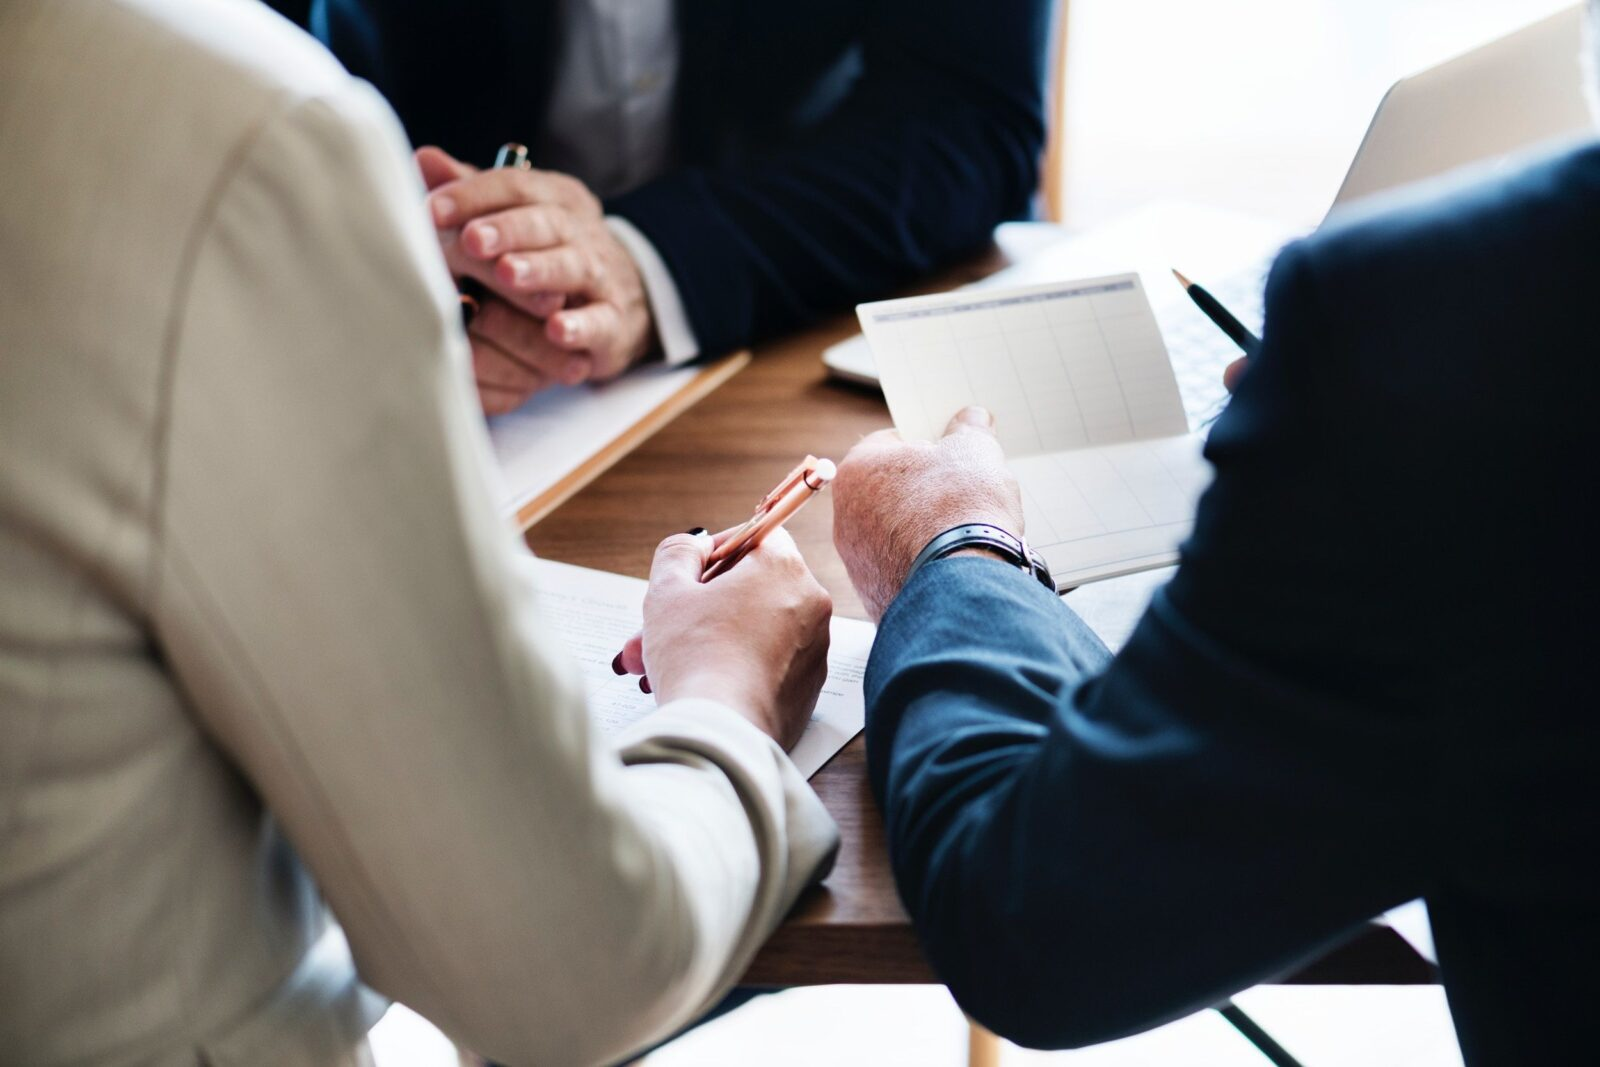 Accounting consultant's making merger and acquisition decisions